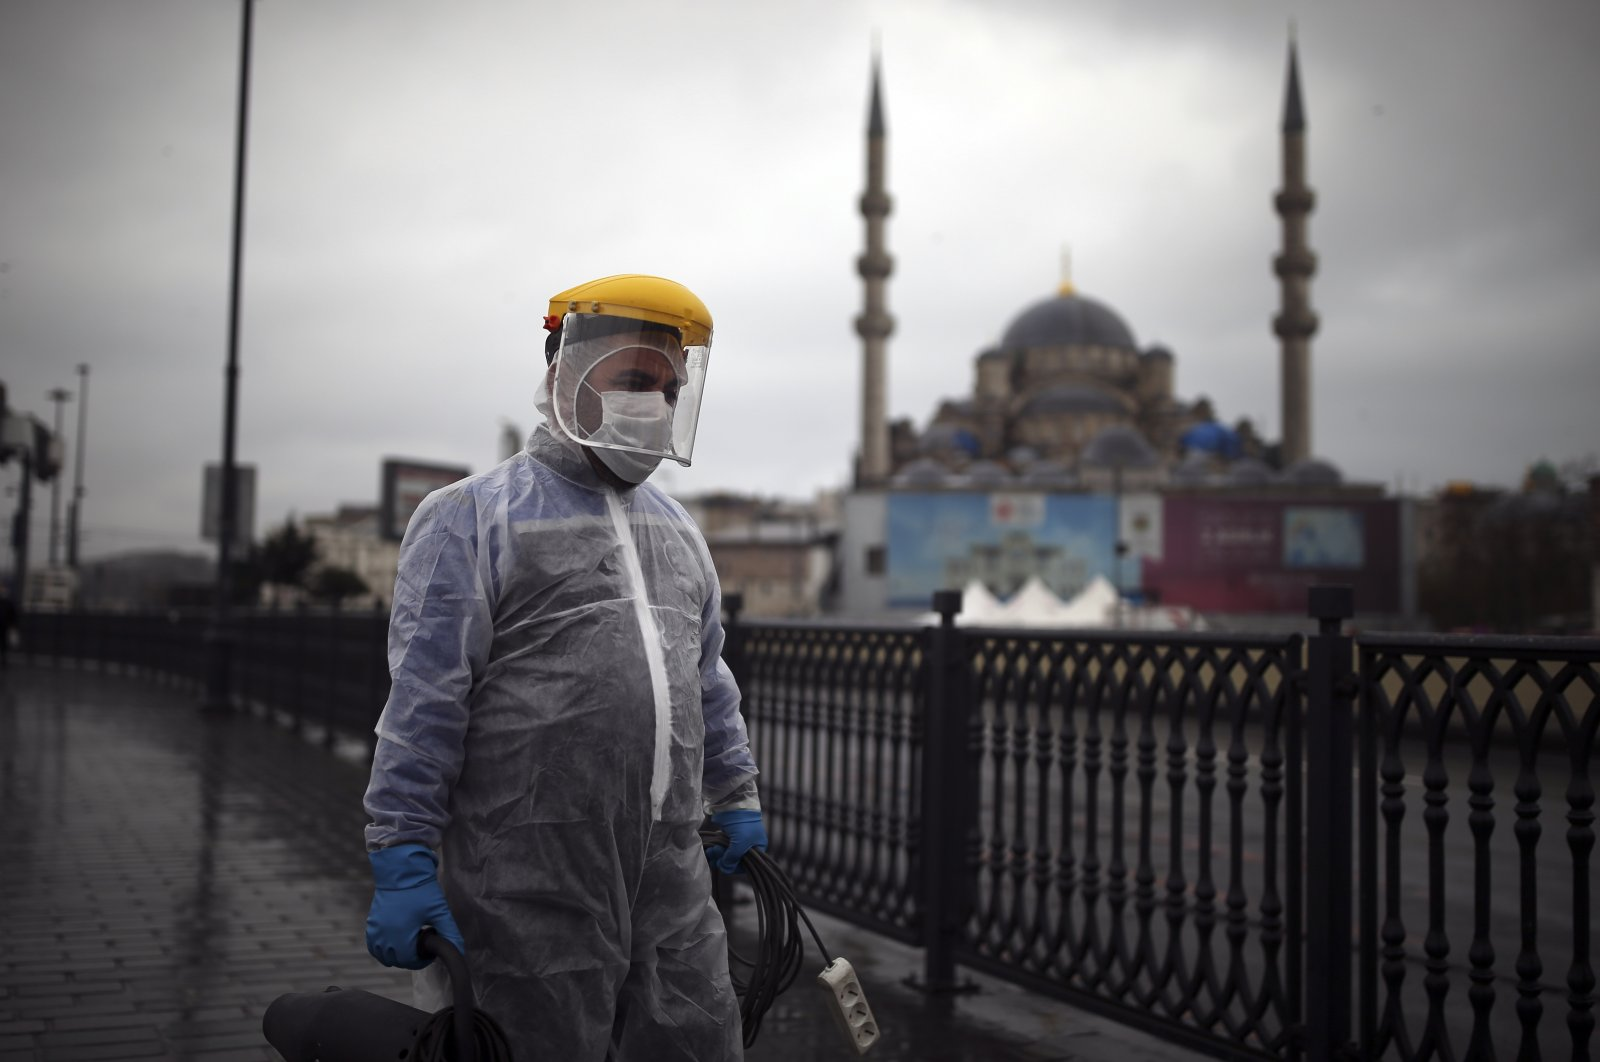 A municipality worker wearing a protective suit to help curb the spread of the coronavirus, walks to spray disinfectant on Galata Bridge over the Golden Horn in Istanbul, Turkey, Dec. 15, 2020. (AP Photo)